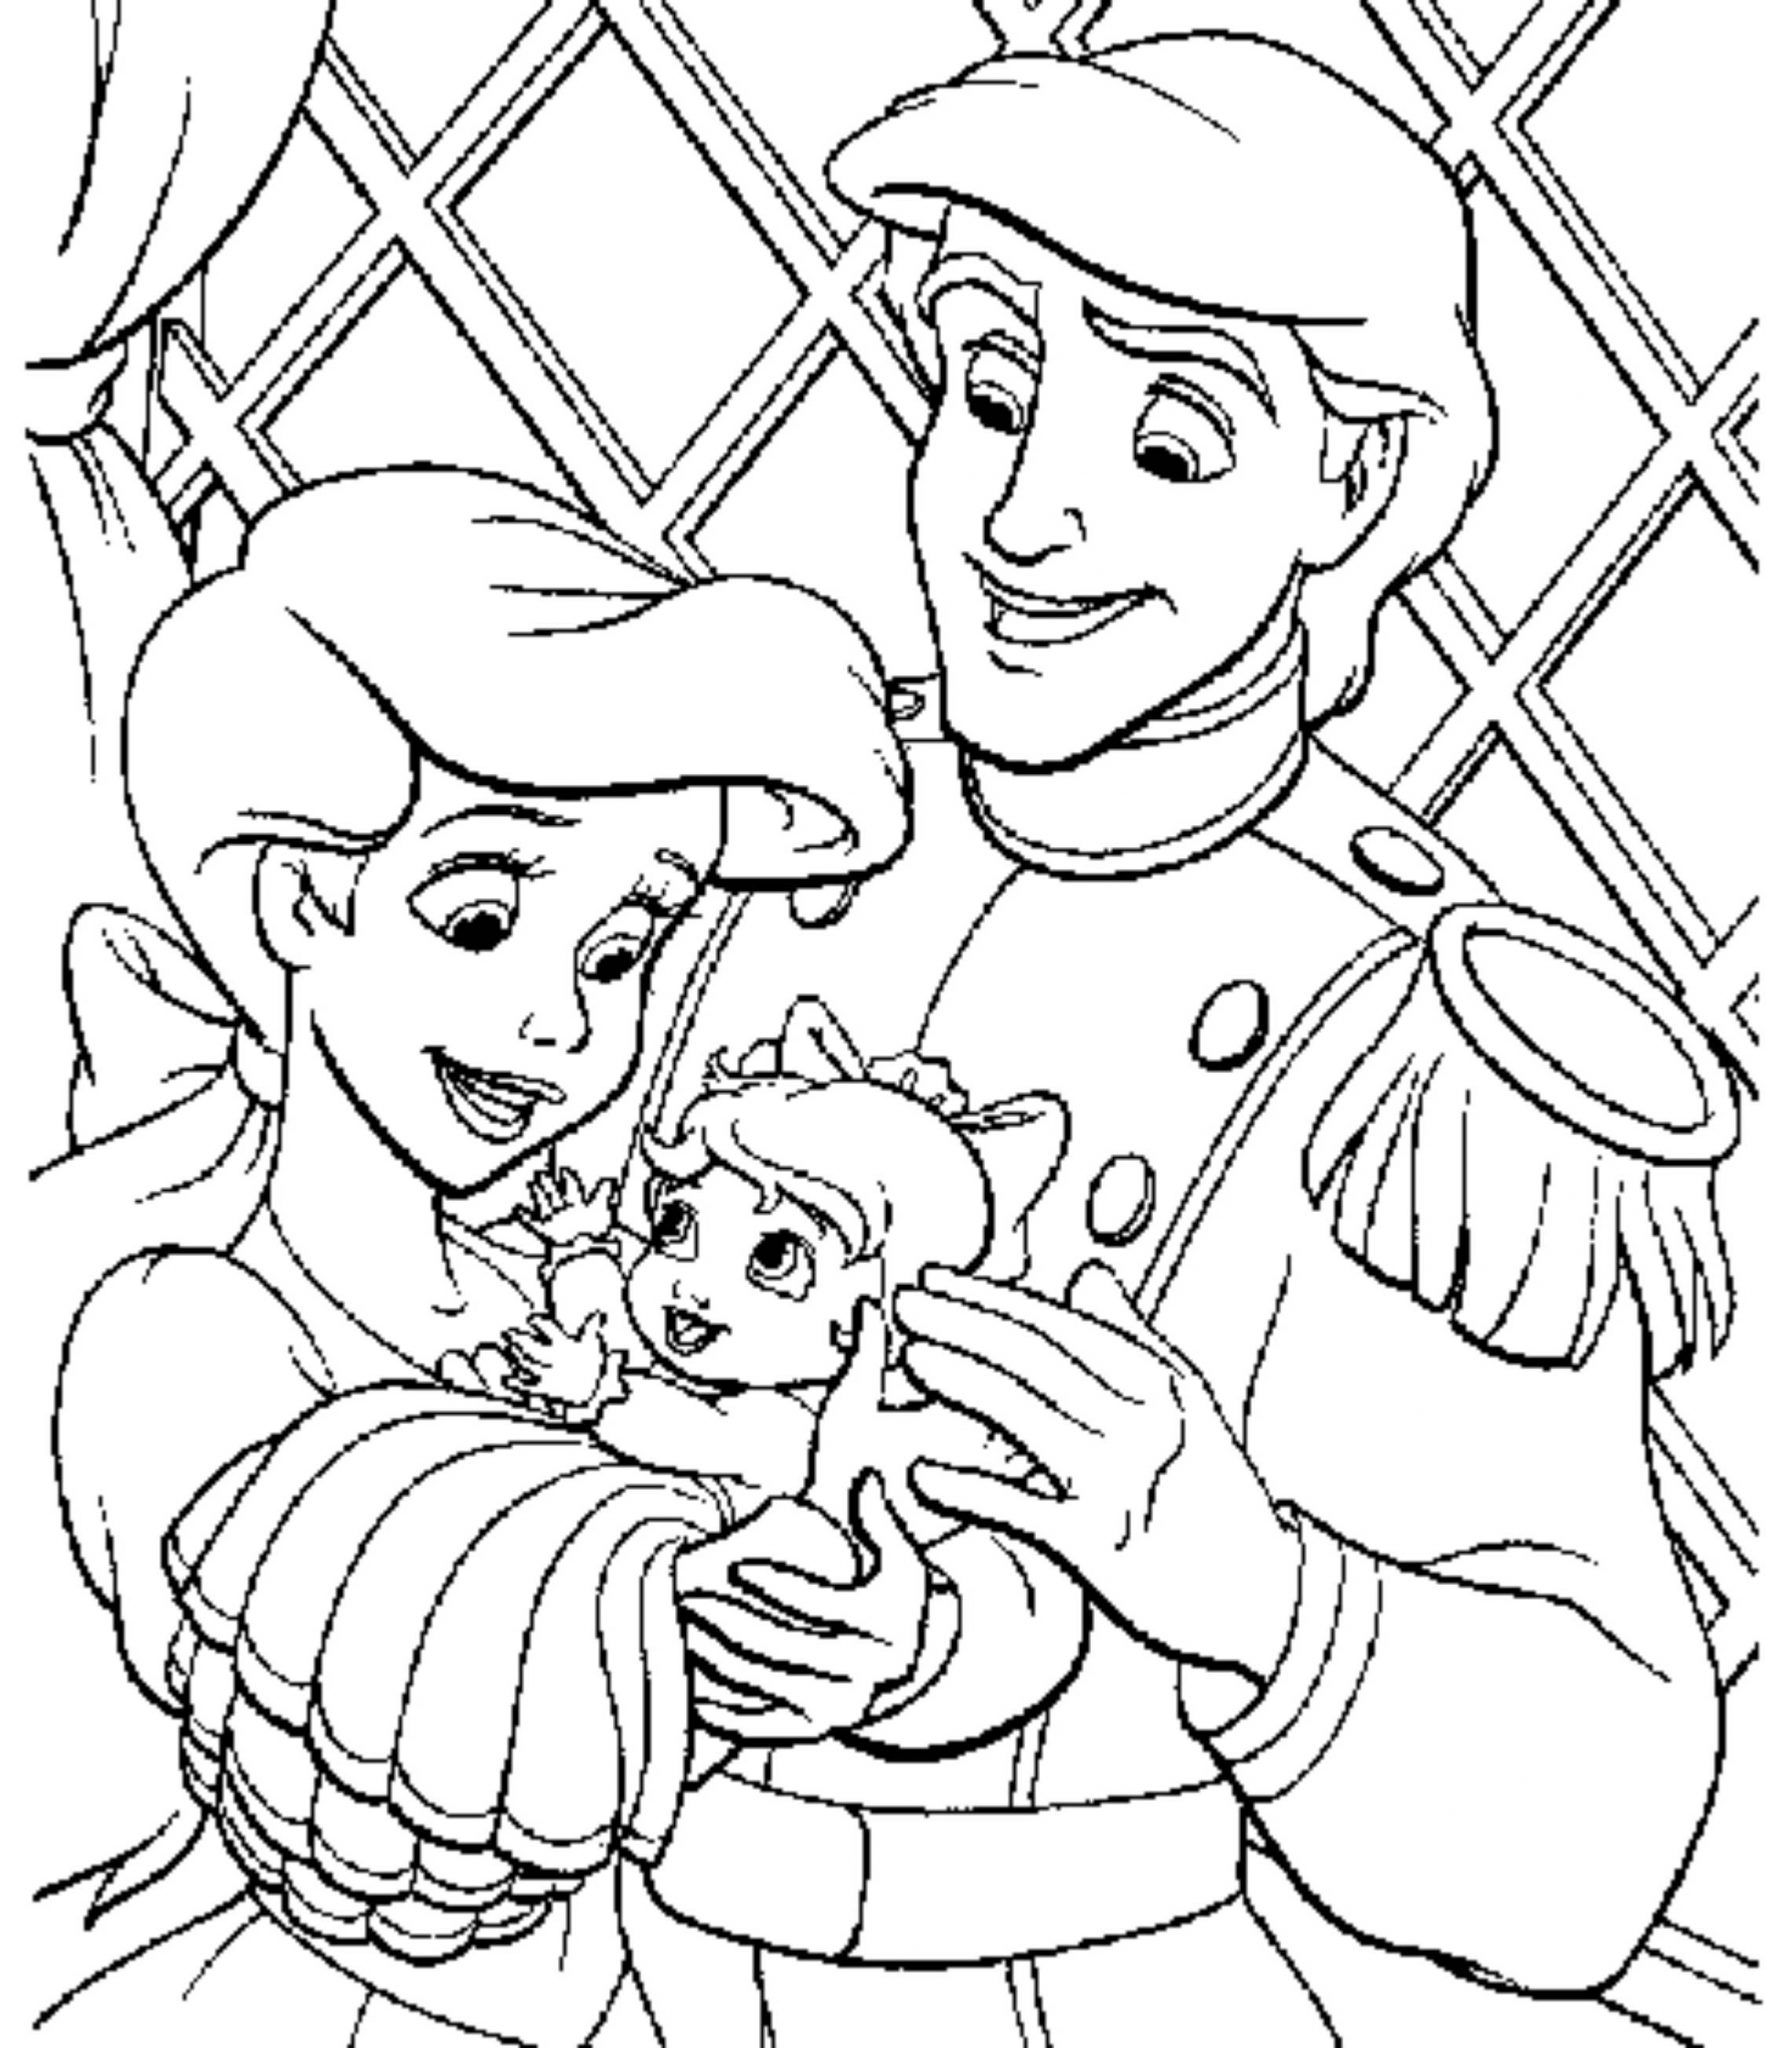 coloring for kids disney baby disney coloring pages to download and print for free kids coloring for disney